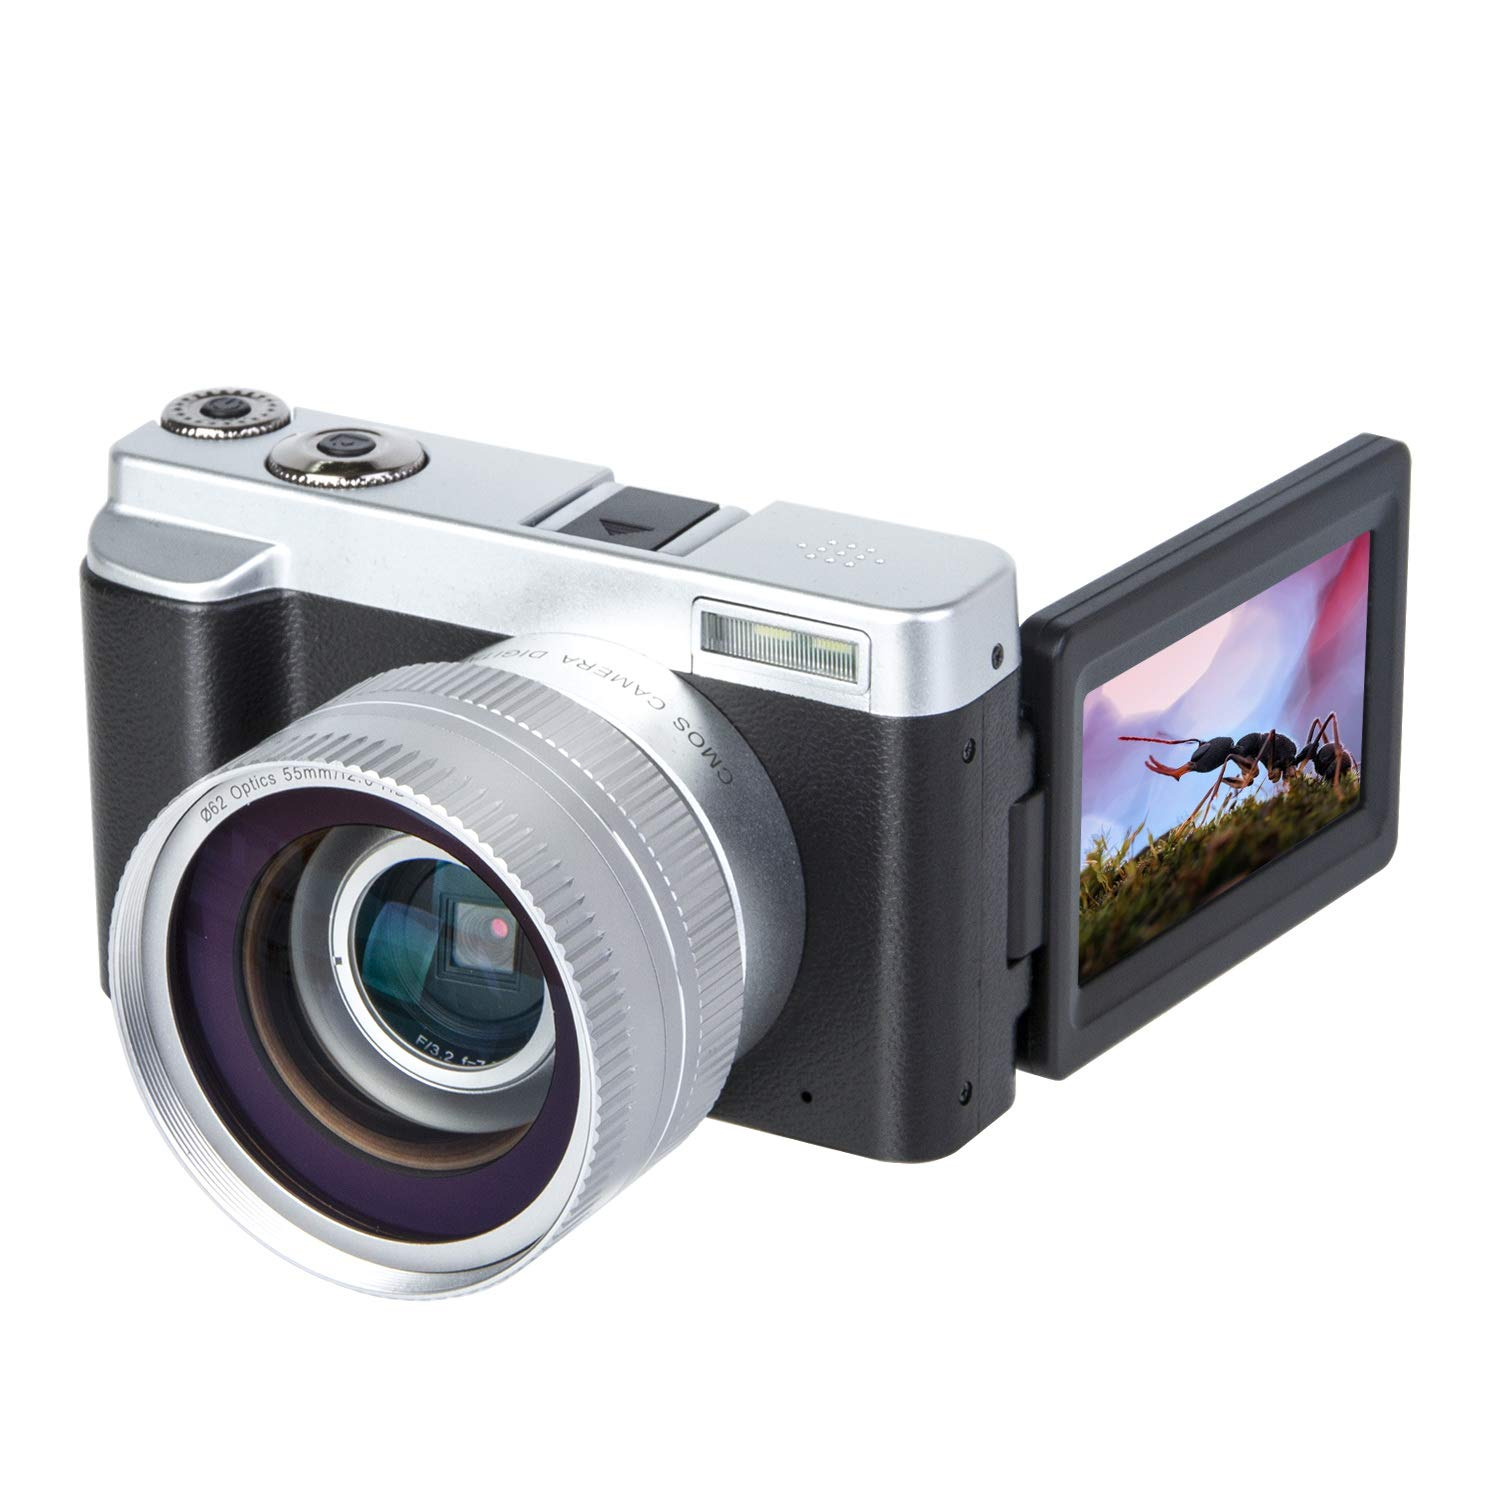 Digital Camera Video Camera Vlogging YouTube Recorder HD1080P 30FPS 24.0MP 3.0 Inch Flip Screen 16X Digital Zoom WiFi Camera with Wide Angle Lens and 2 Batteries by YEEHAO